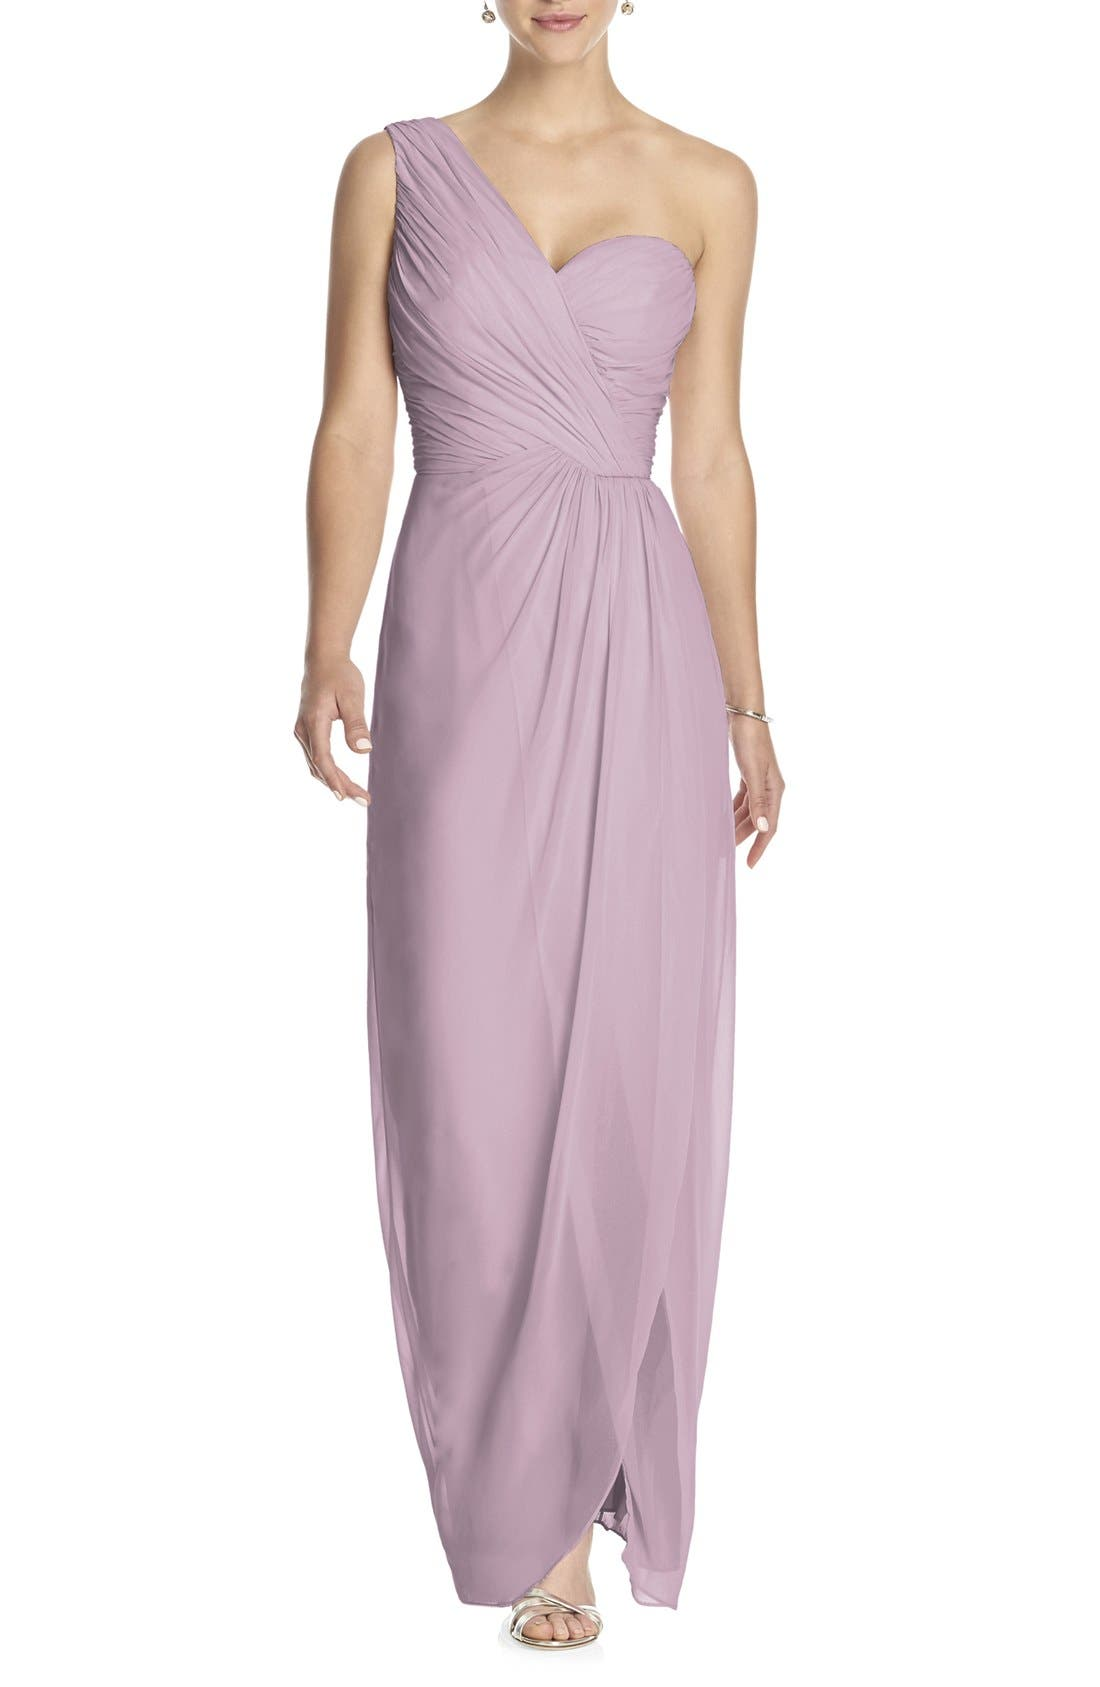 DessyCollection One-Shoulder Draped Chiffon Gown,                             Main thumbnail 1, color,                             654